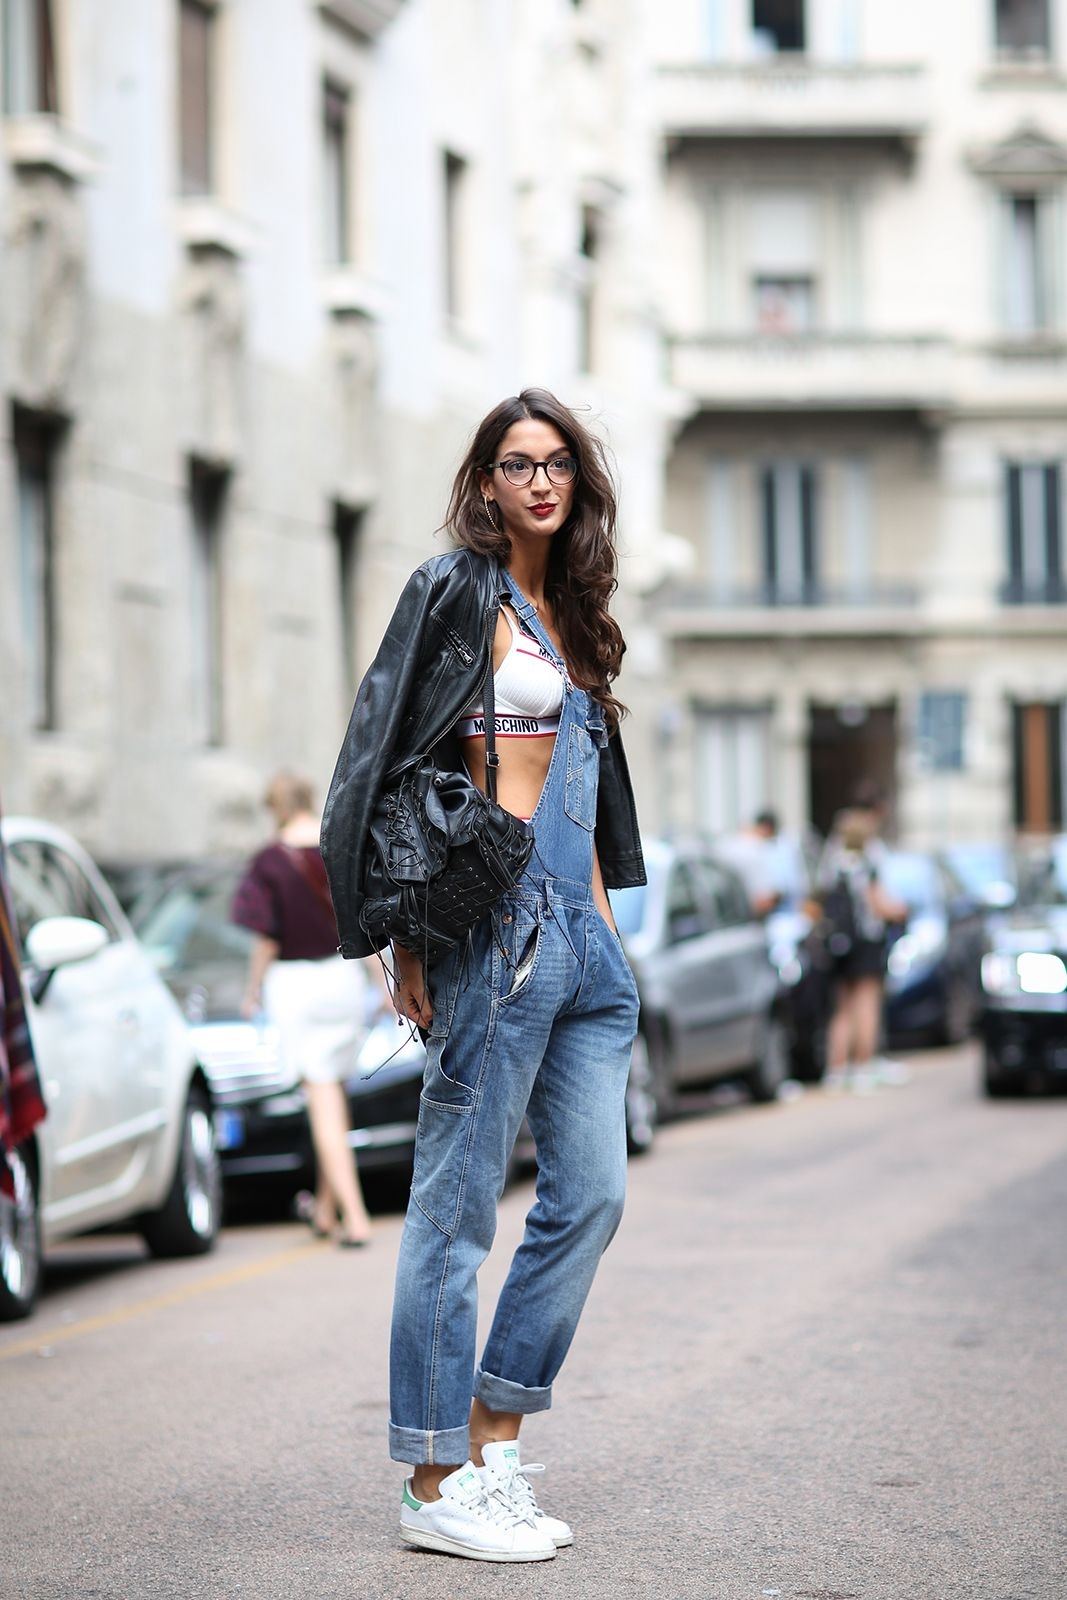 How To Dress Like An Italian Girl — 50+ Lessons Worth Knowing #refinery29  http://www.refinery29.com/2014/09/74945/milan-fashion-week-2014-street-style#slide14  Here's the tomboy way to do overalls (though, the glamor waves and lipstick totally crank this look up a notch).